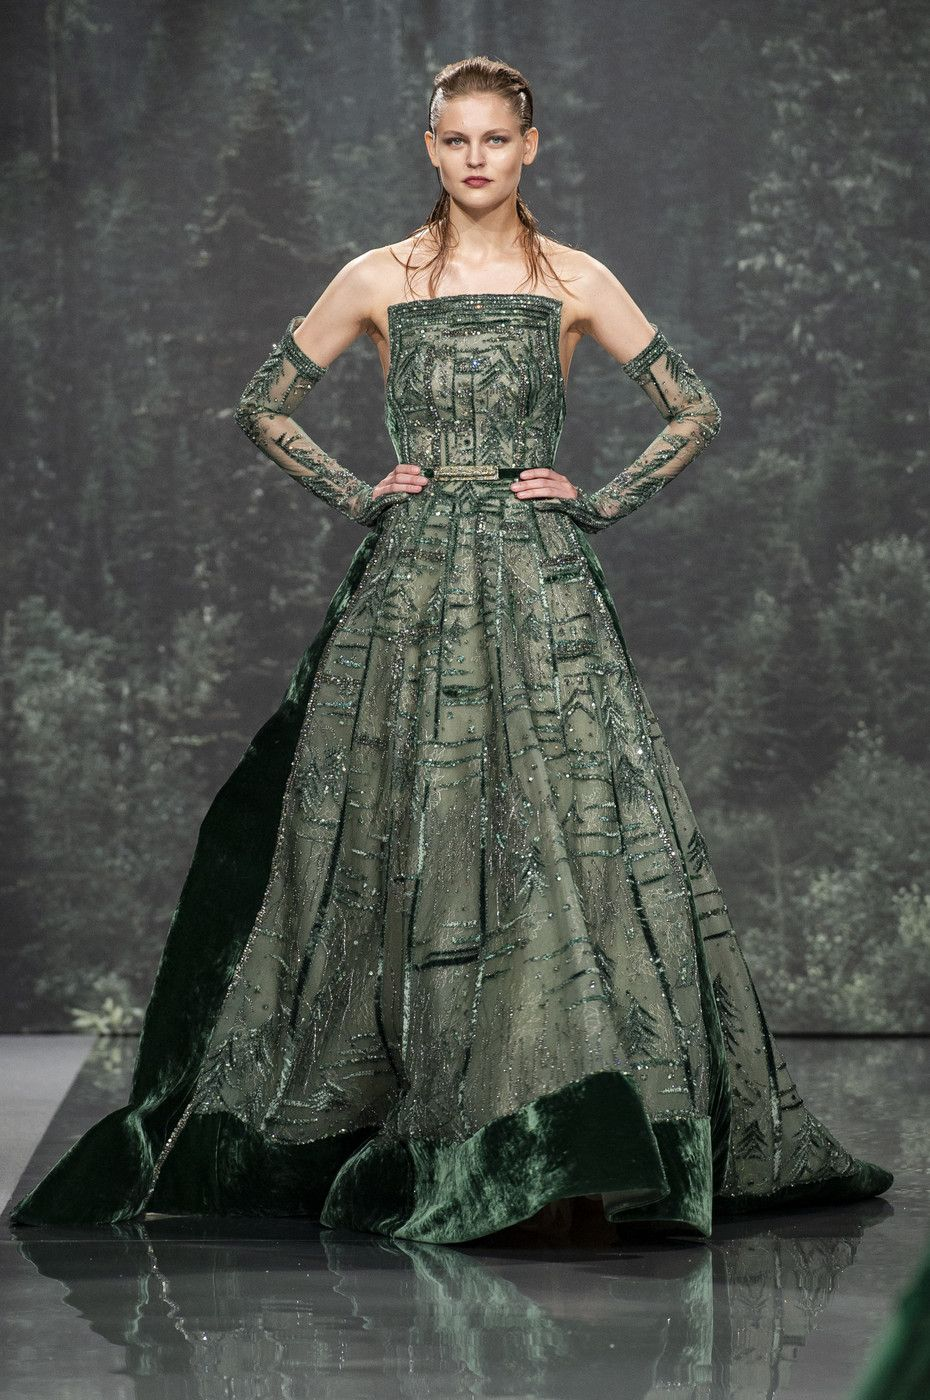 Ziad nakad at couture fall shades of green pinterest